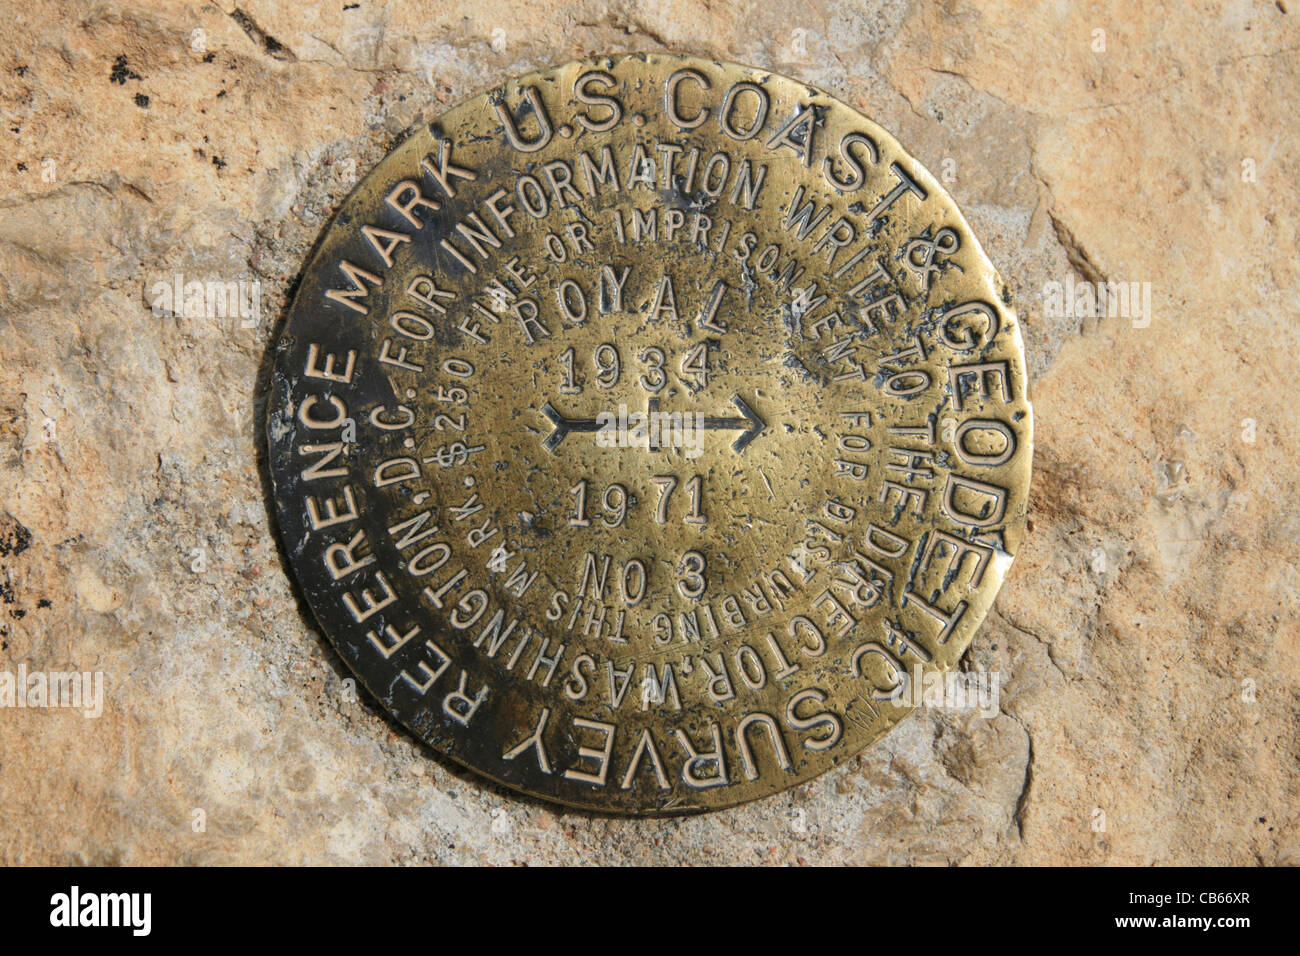 USGS bench mark reference marker at Cape Royal on the north rim of the Grand Canyon, Arizona - Stock Image